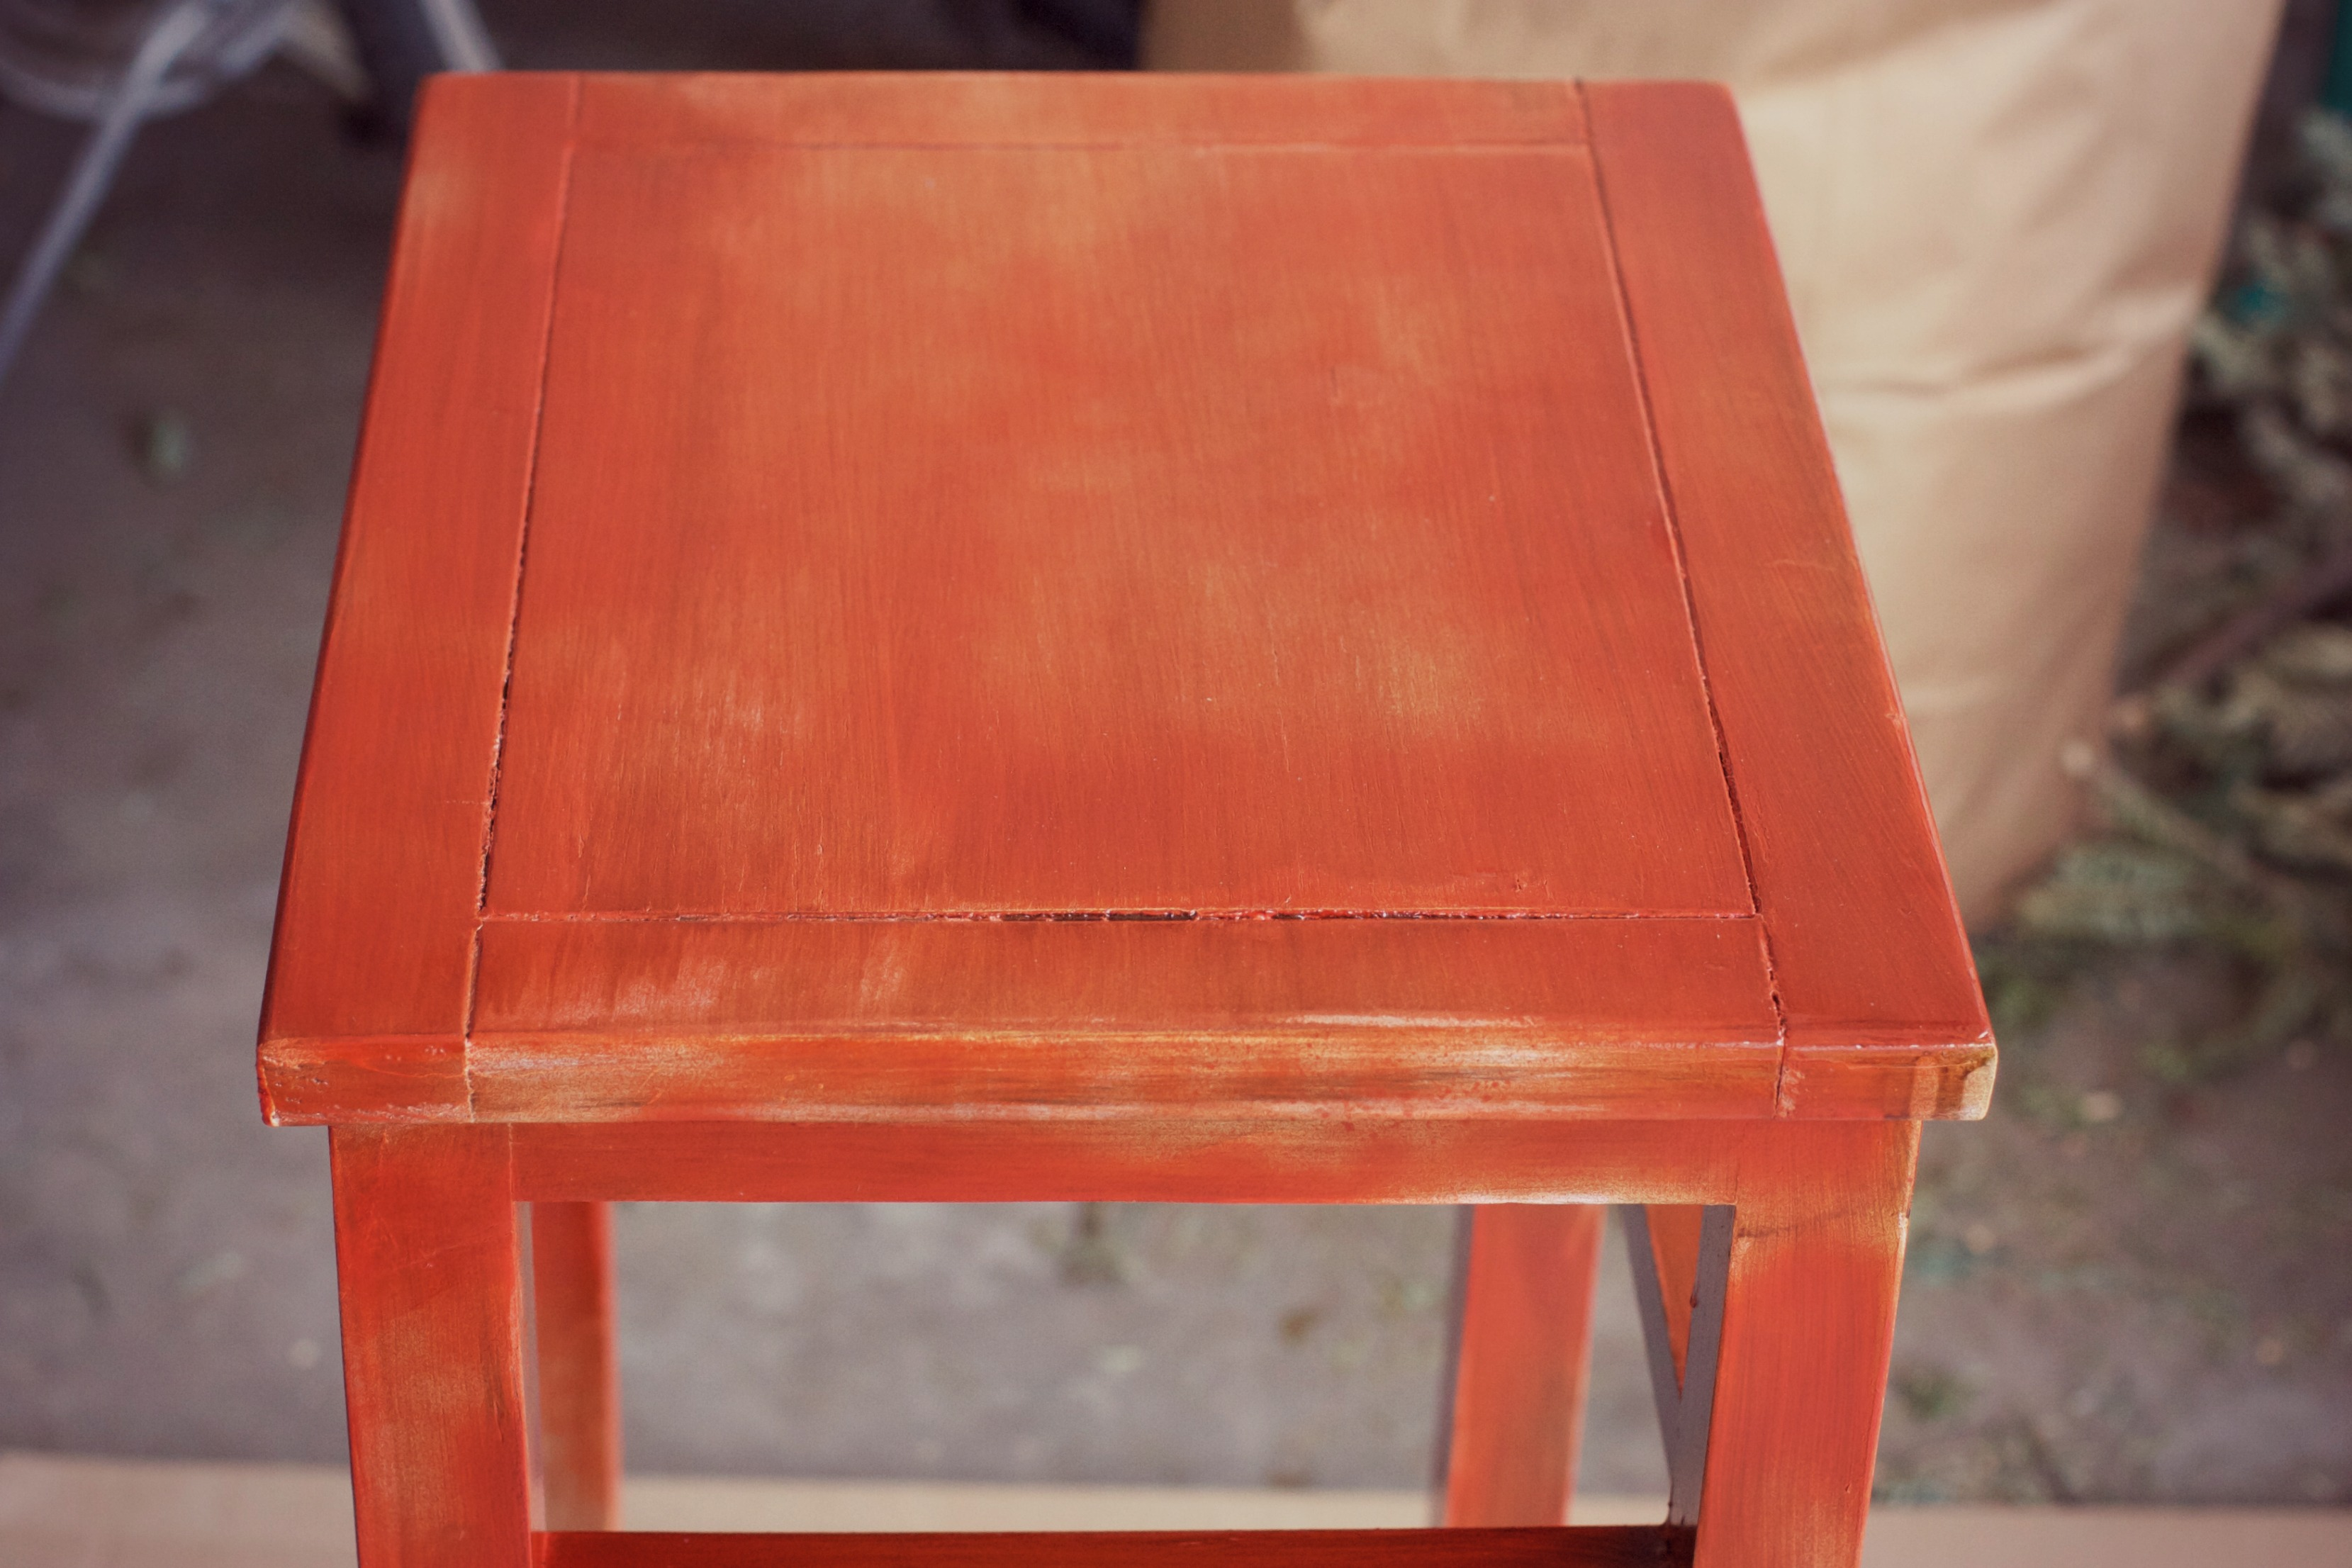 diy upcycled side table planter offbeat inspired wood stained close accent ikea nest tables hobby lobby decorations bar height glass cymbal bag mid century dresser garage cabinets